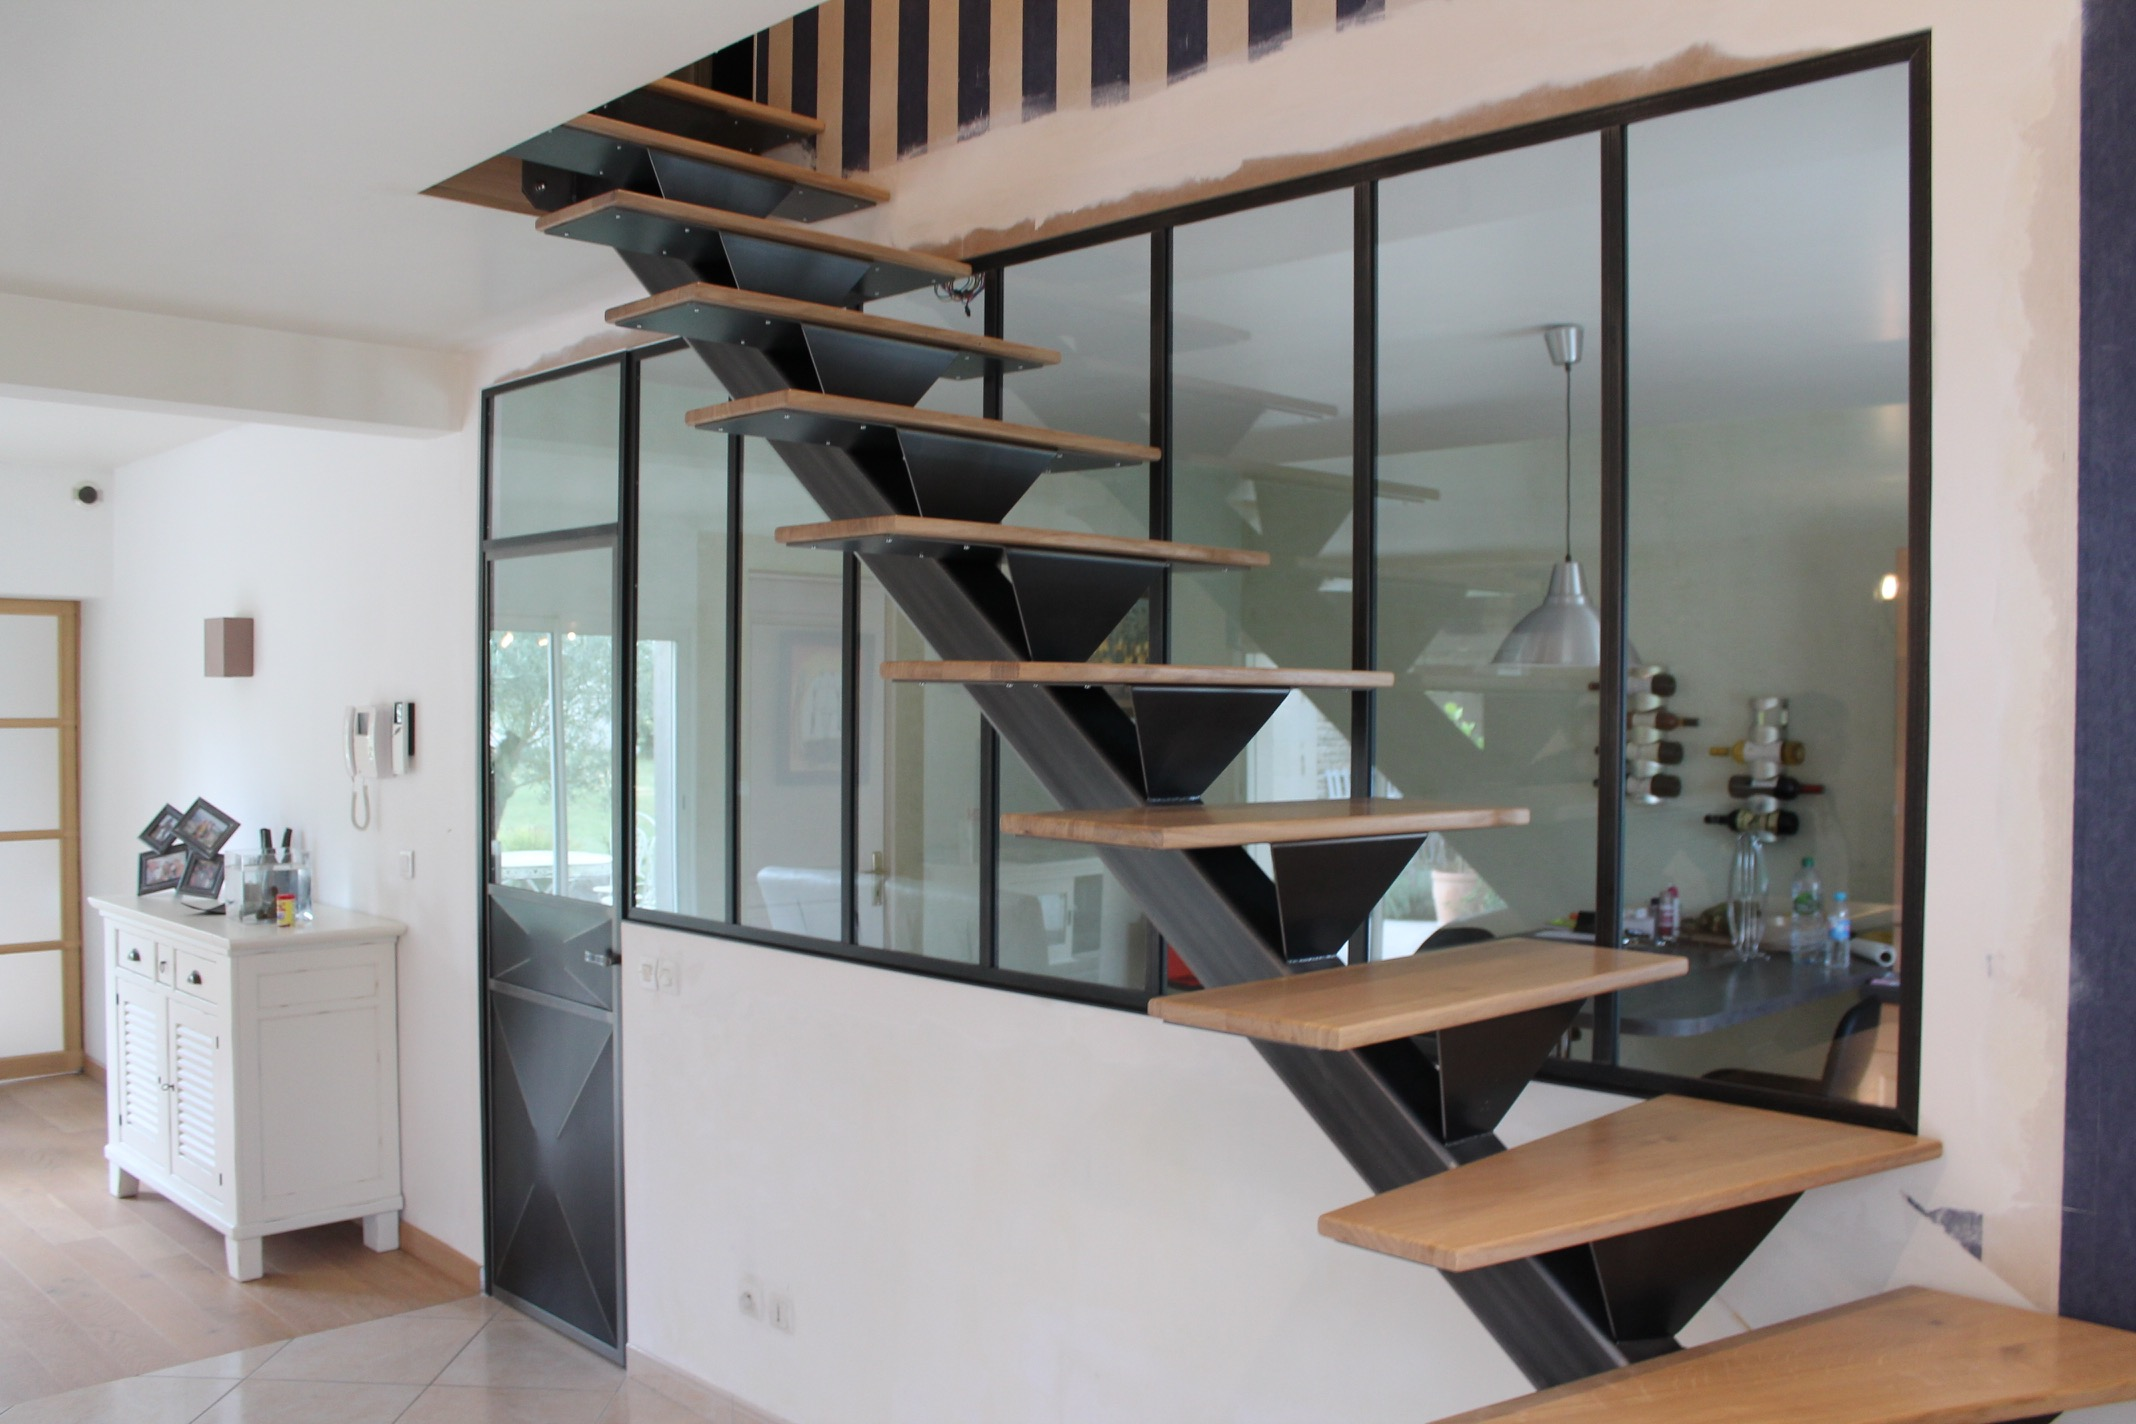 Freesteel cr ation amenagements interieur for Creation interieur